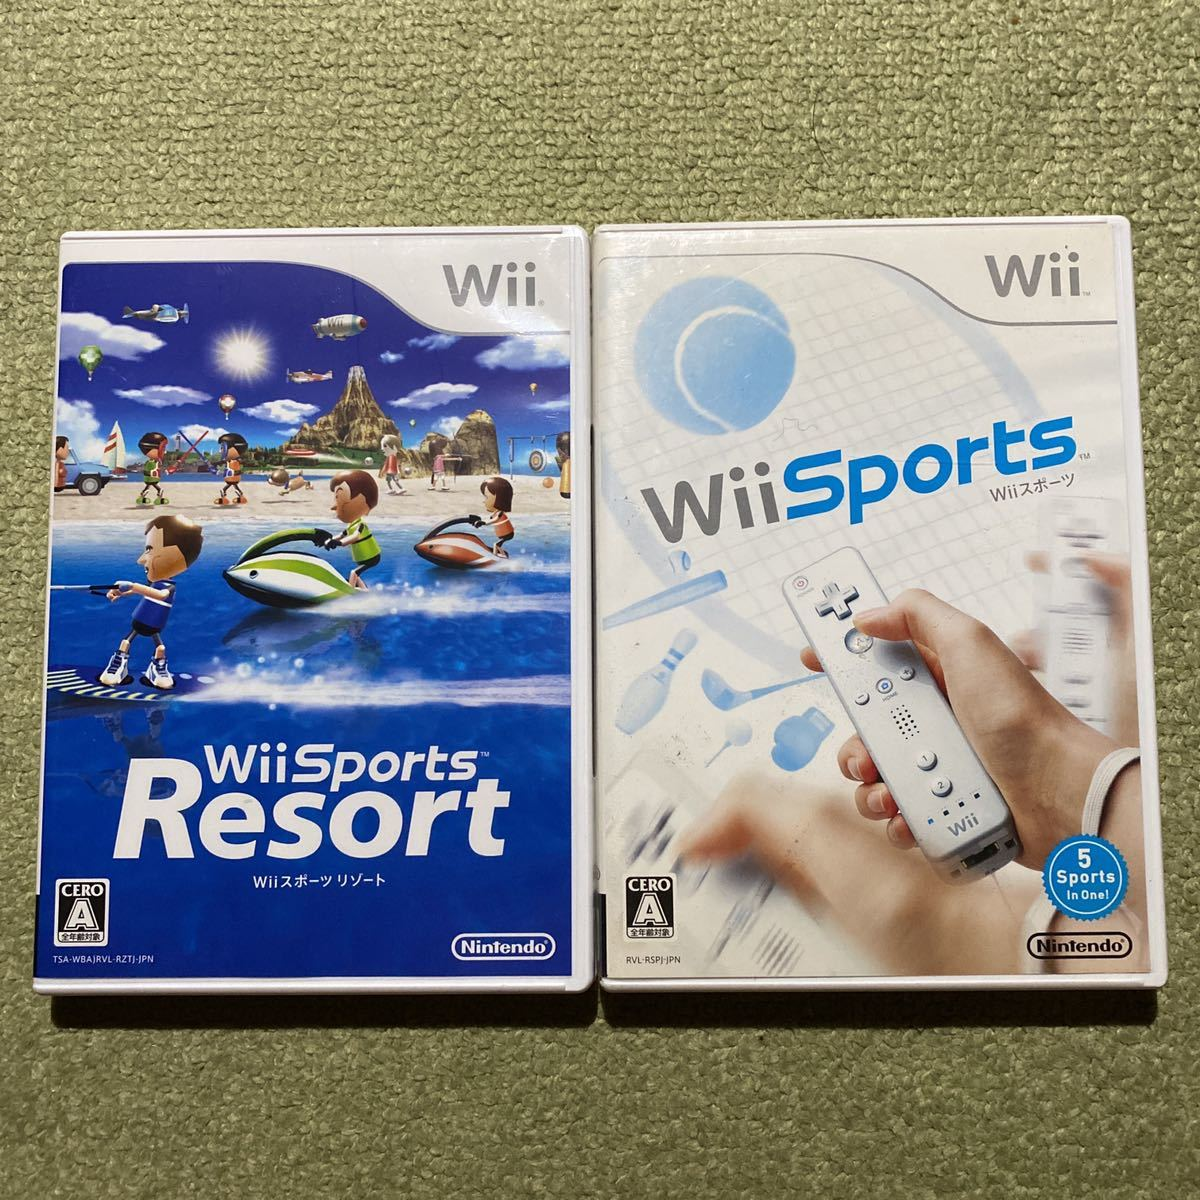 Wii Wii Sports Wiiスポーツリゾート 2本セット 即決